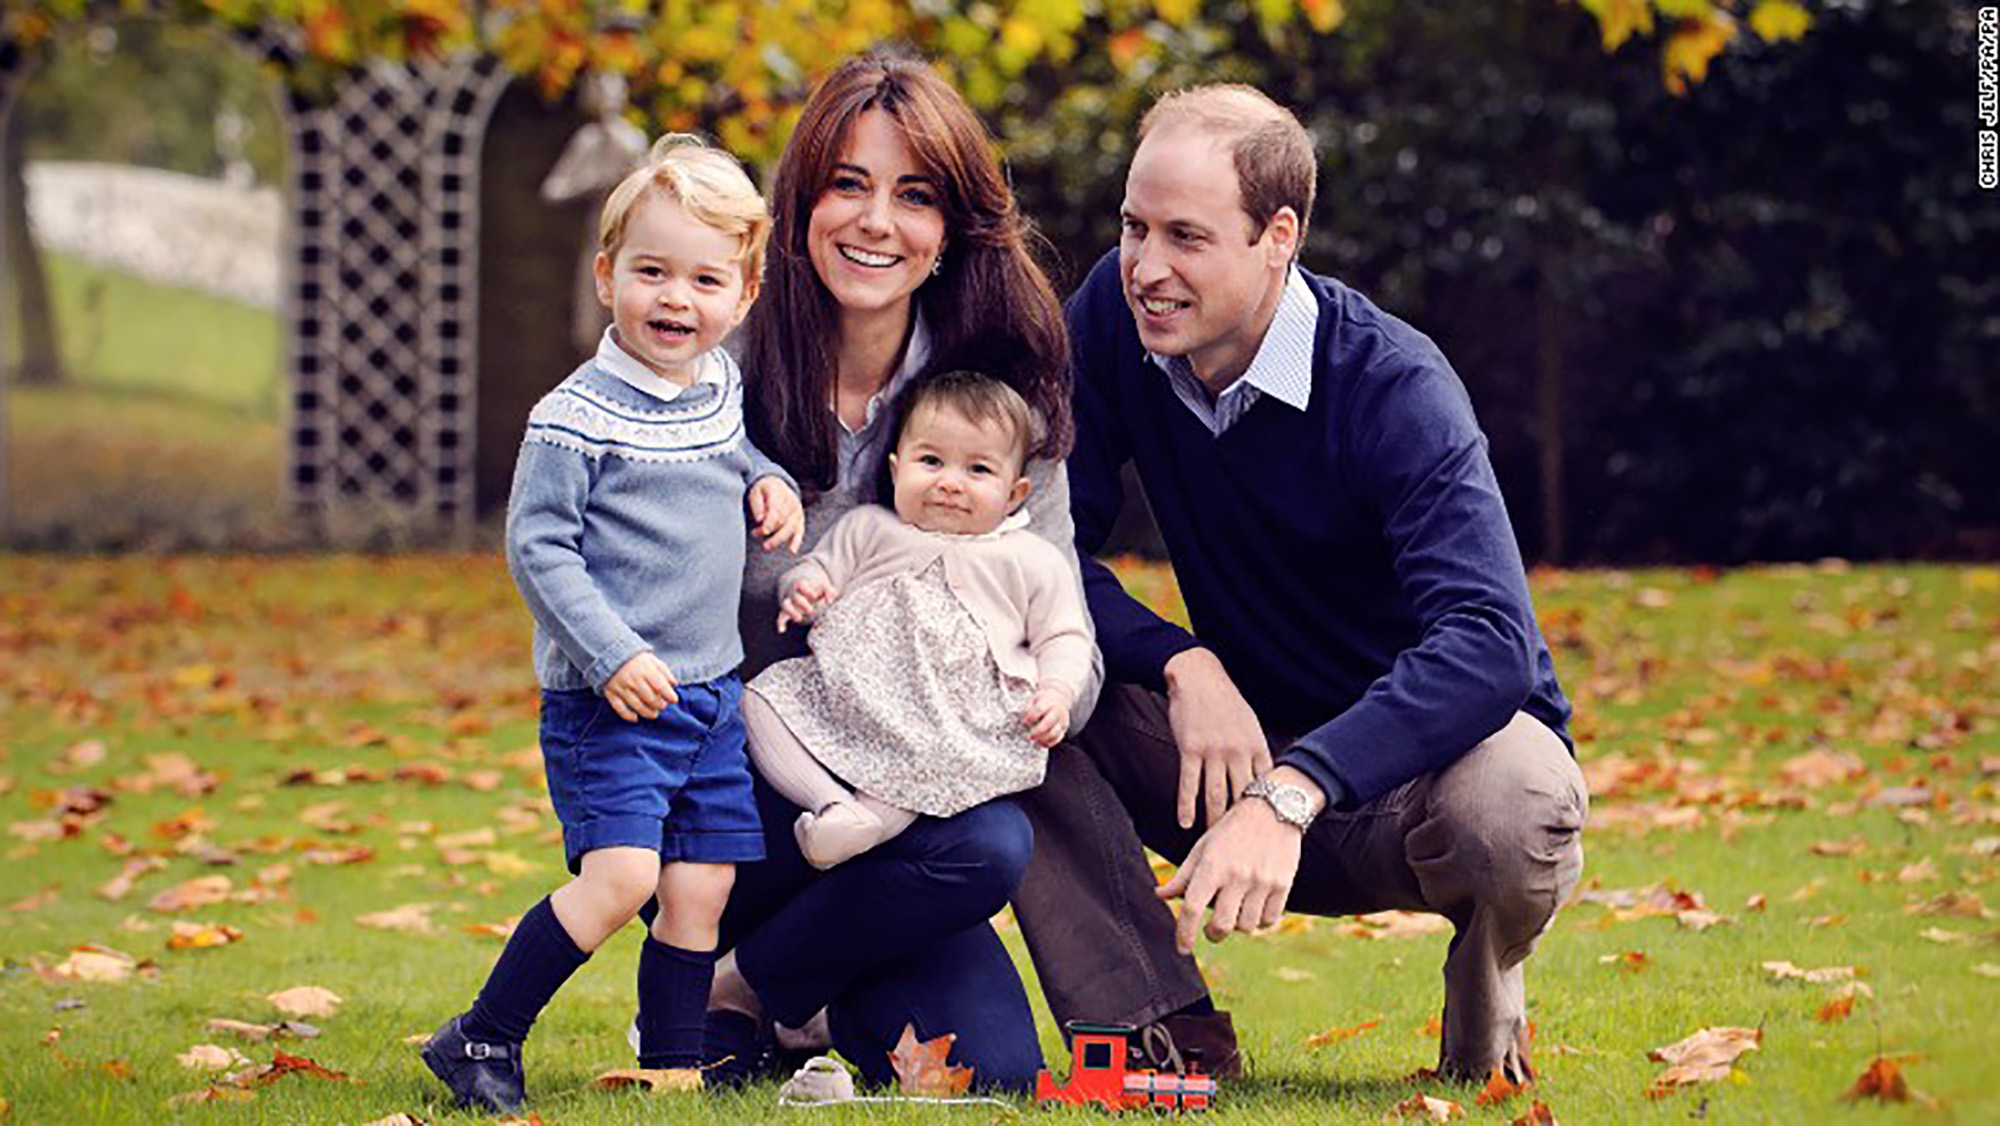 William and Kate release official Christmas photo